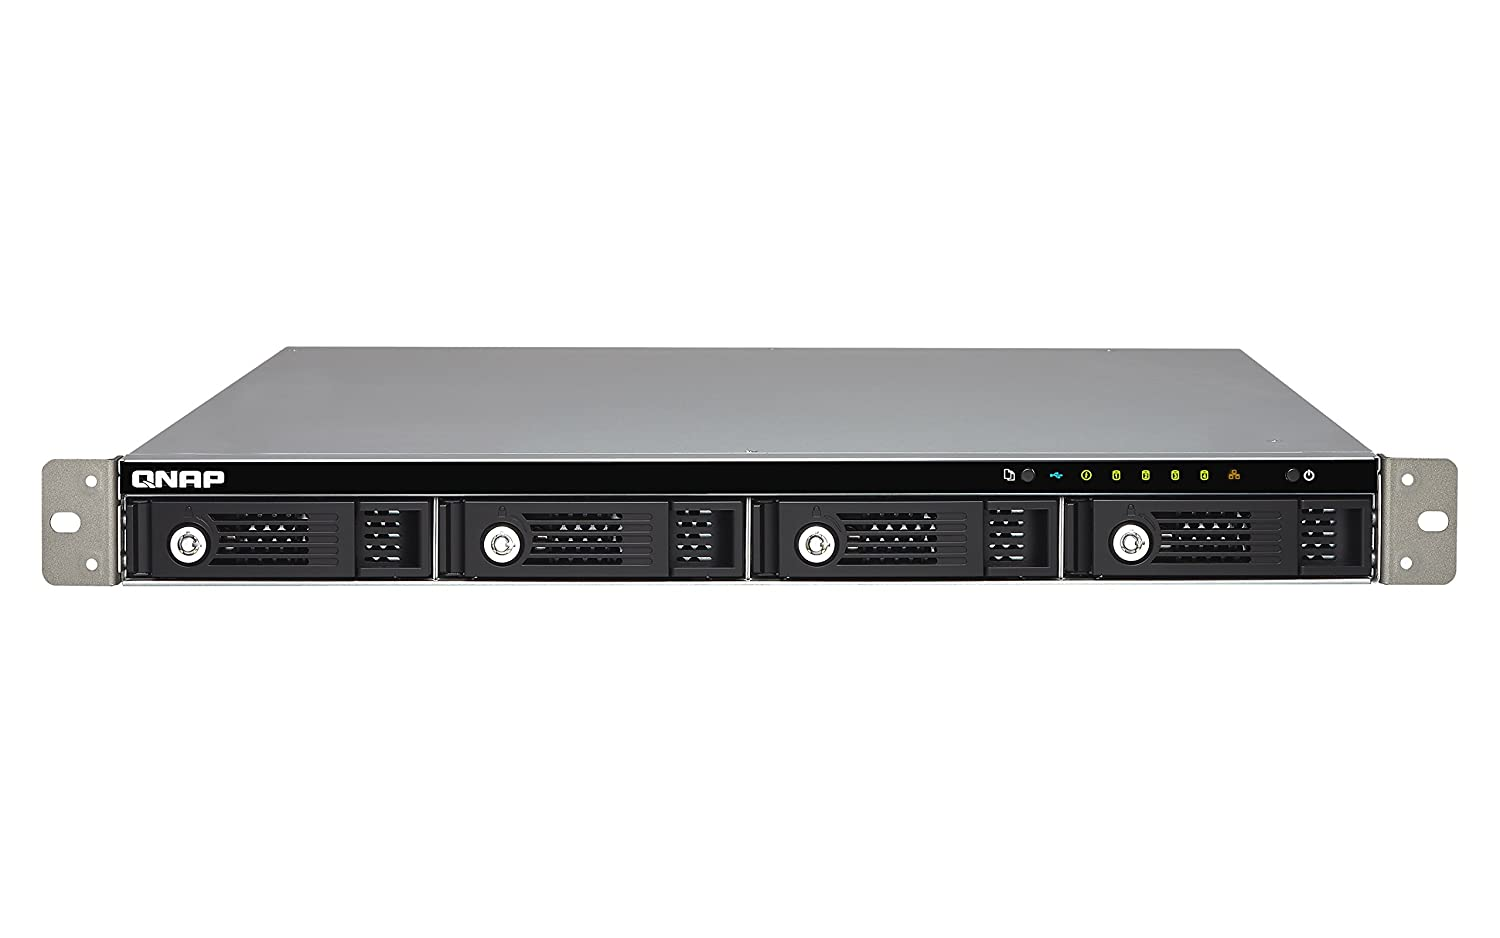 QNAP TS-431U-SP NAS Rack 4-Bay Freescale Arm Cortex